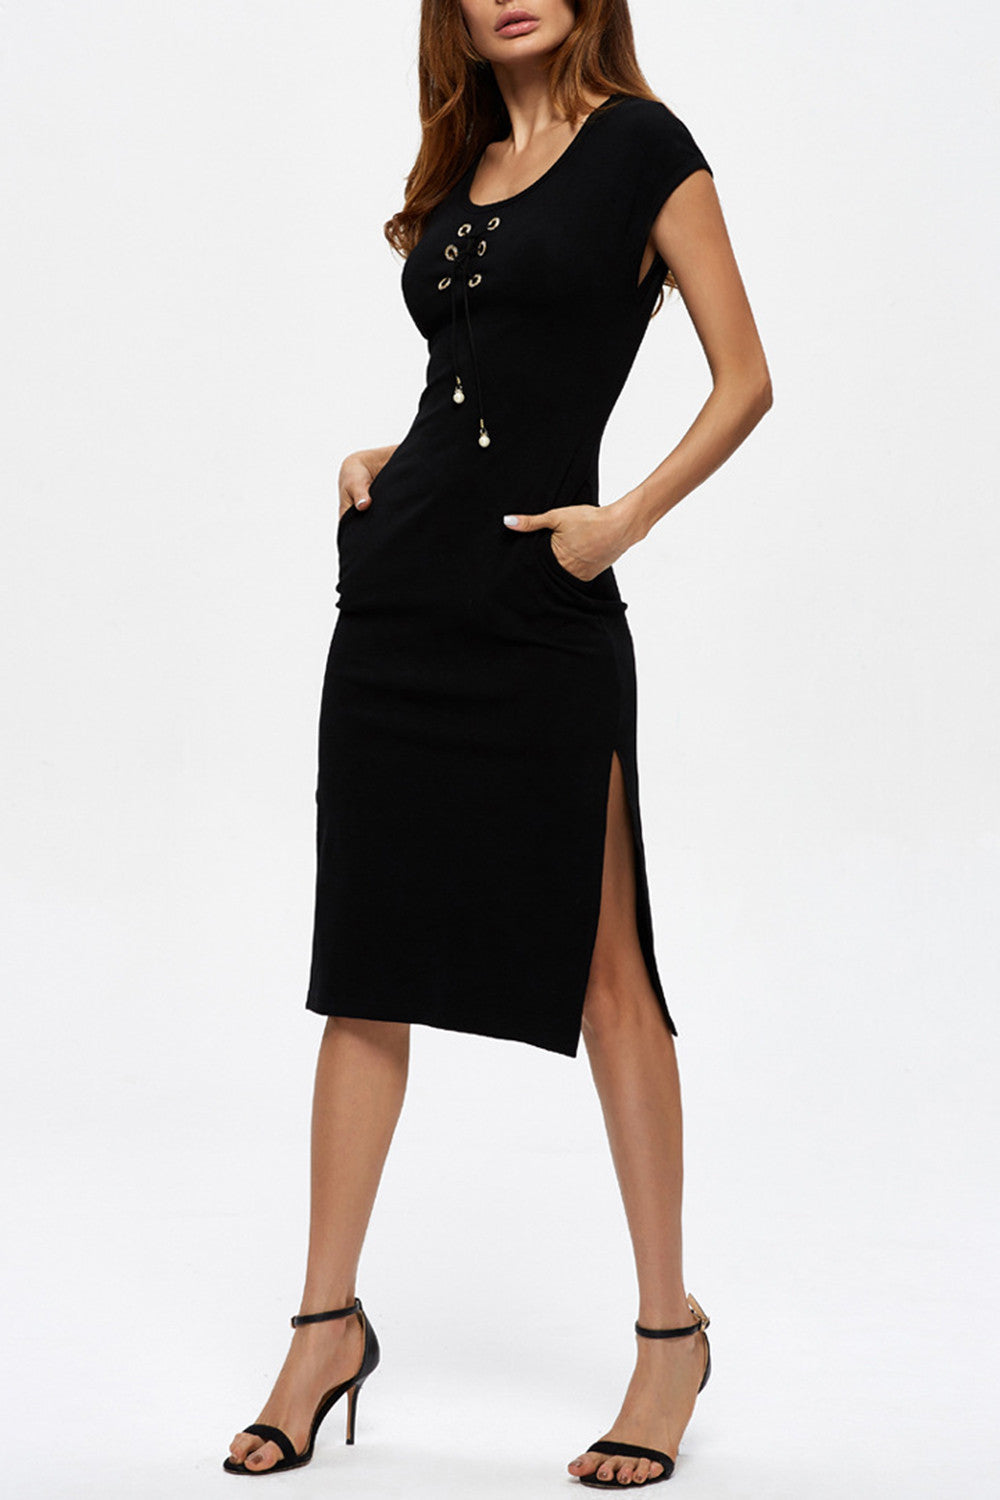 Chicloth Be the First last & Only Work Day Dress - Chicloth